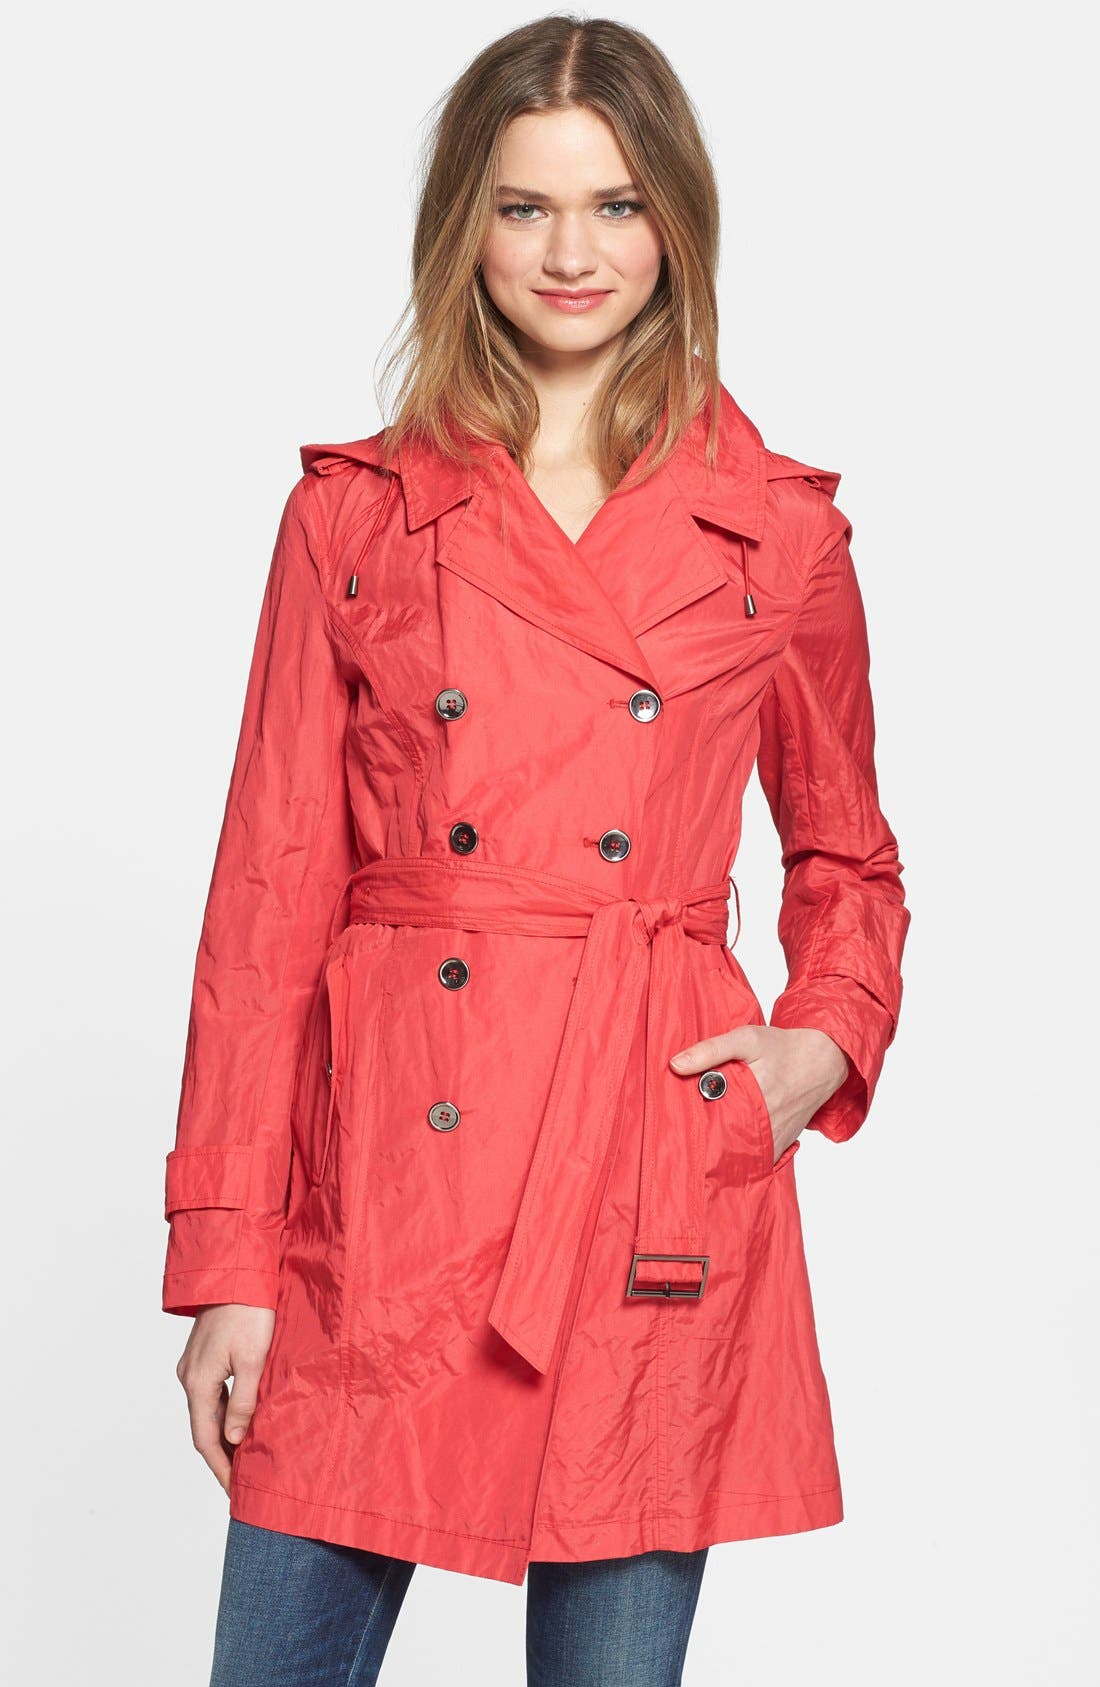 Alternate Image 1 Selected - Cole Haan Double Breasted Packable Metallic Trench Coat